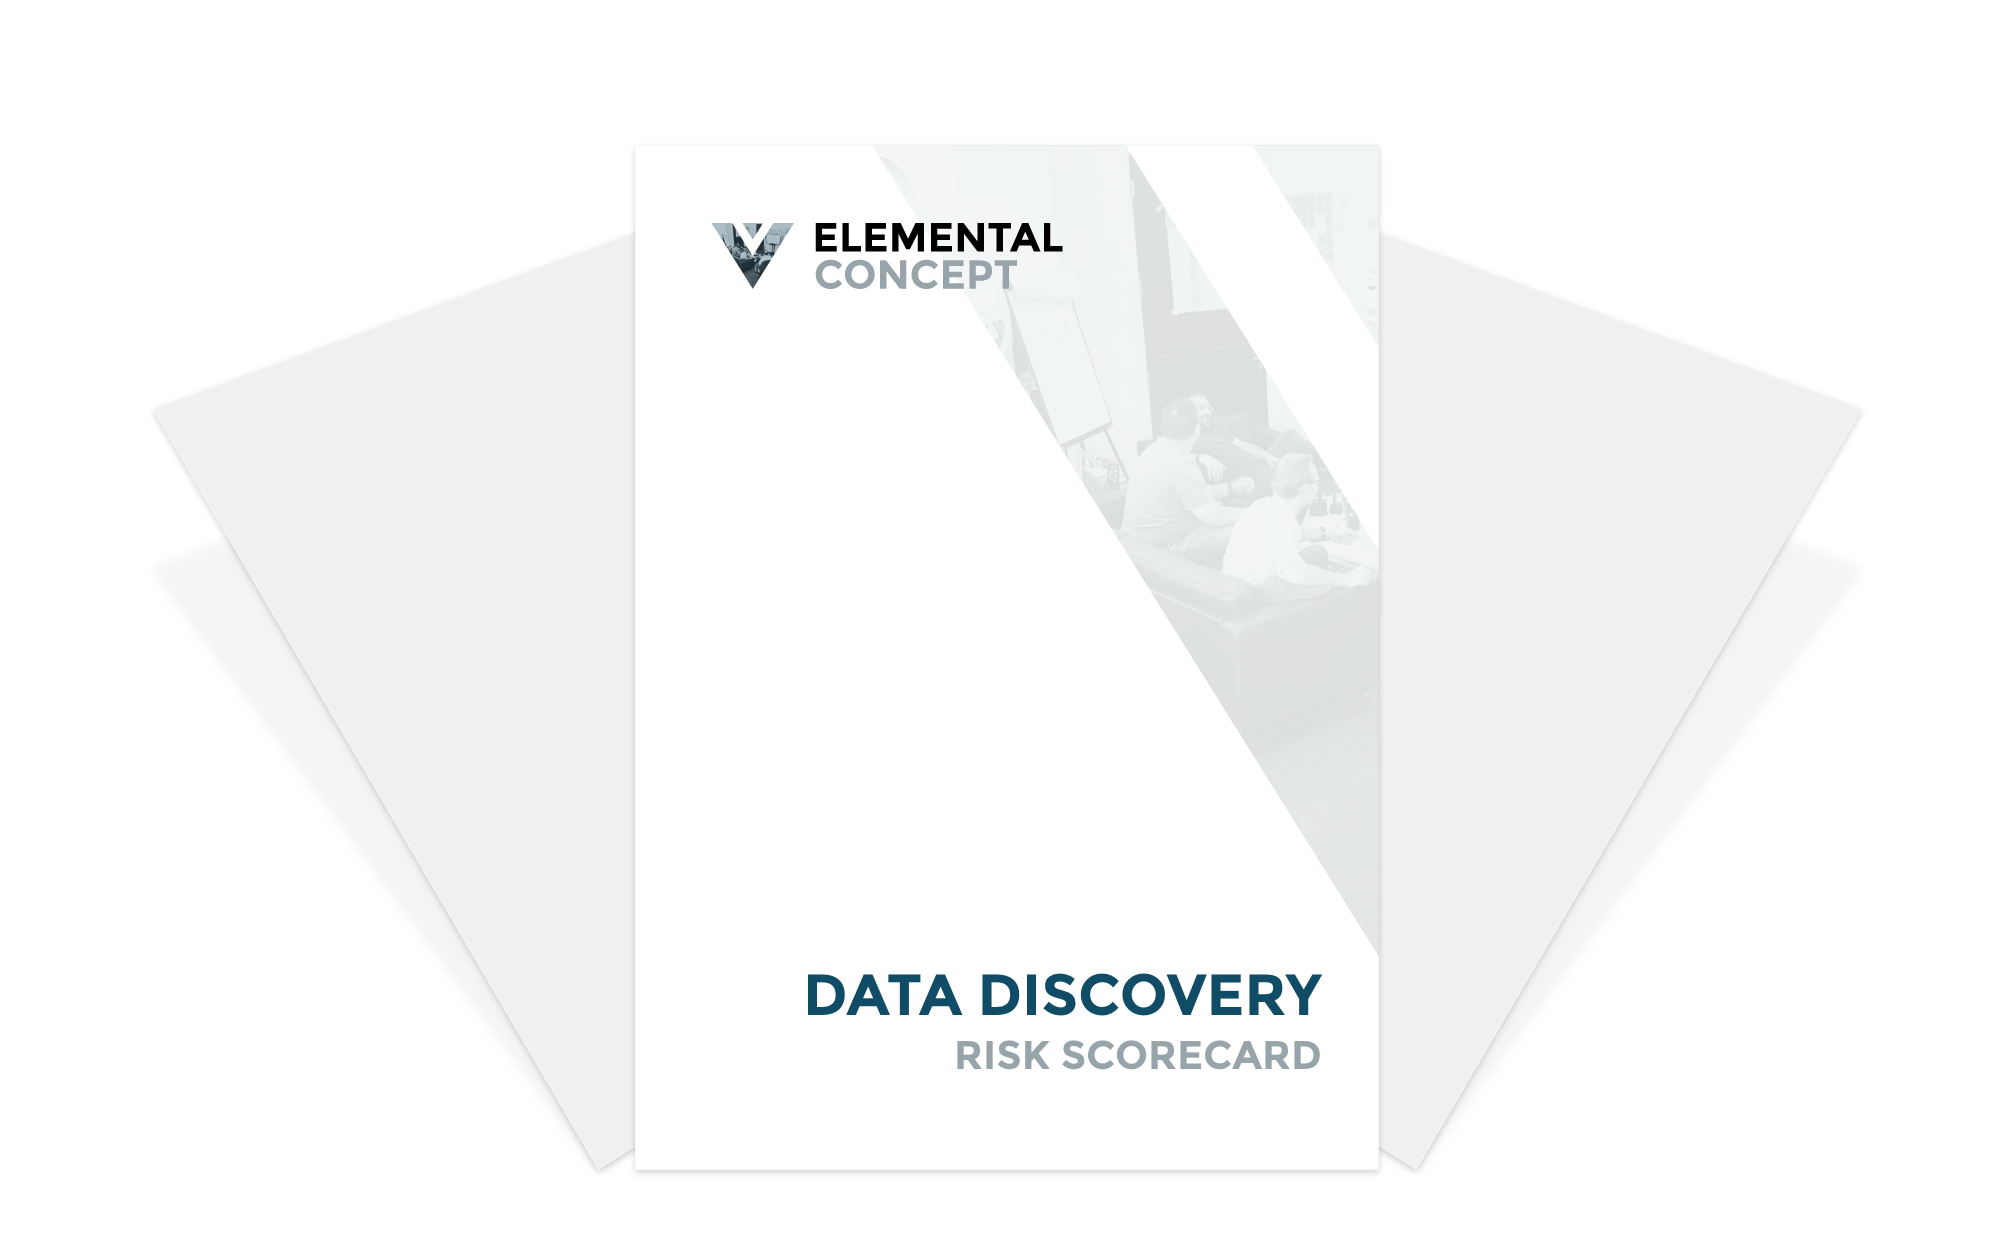 Data Discovery Risk Card